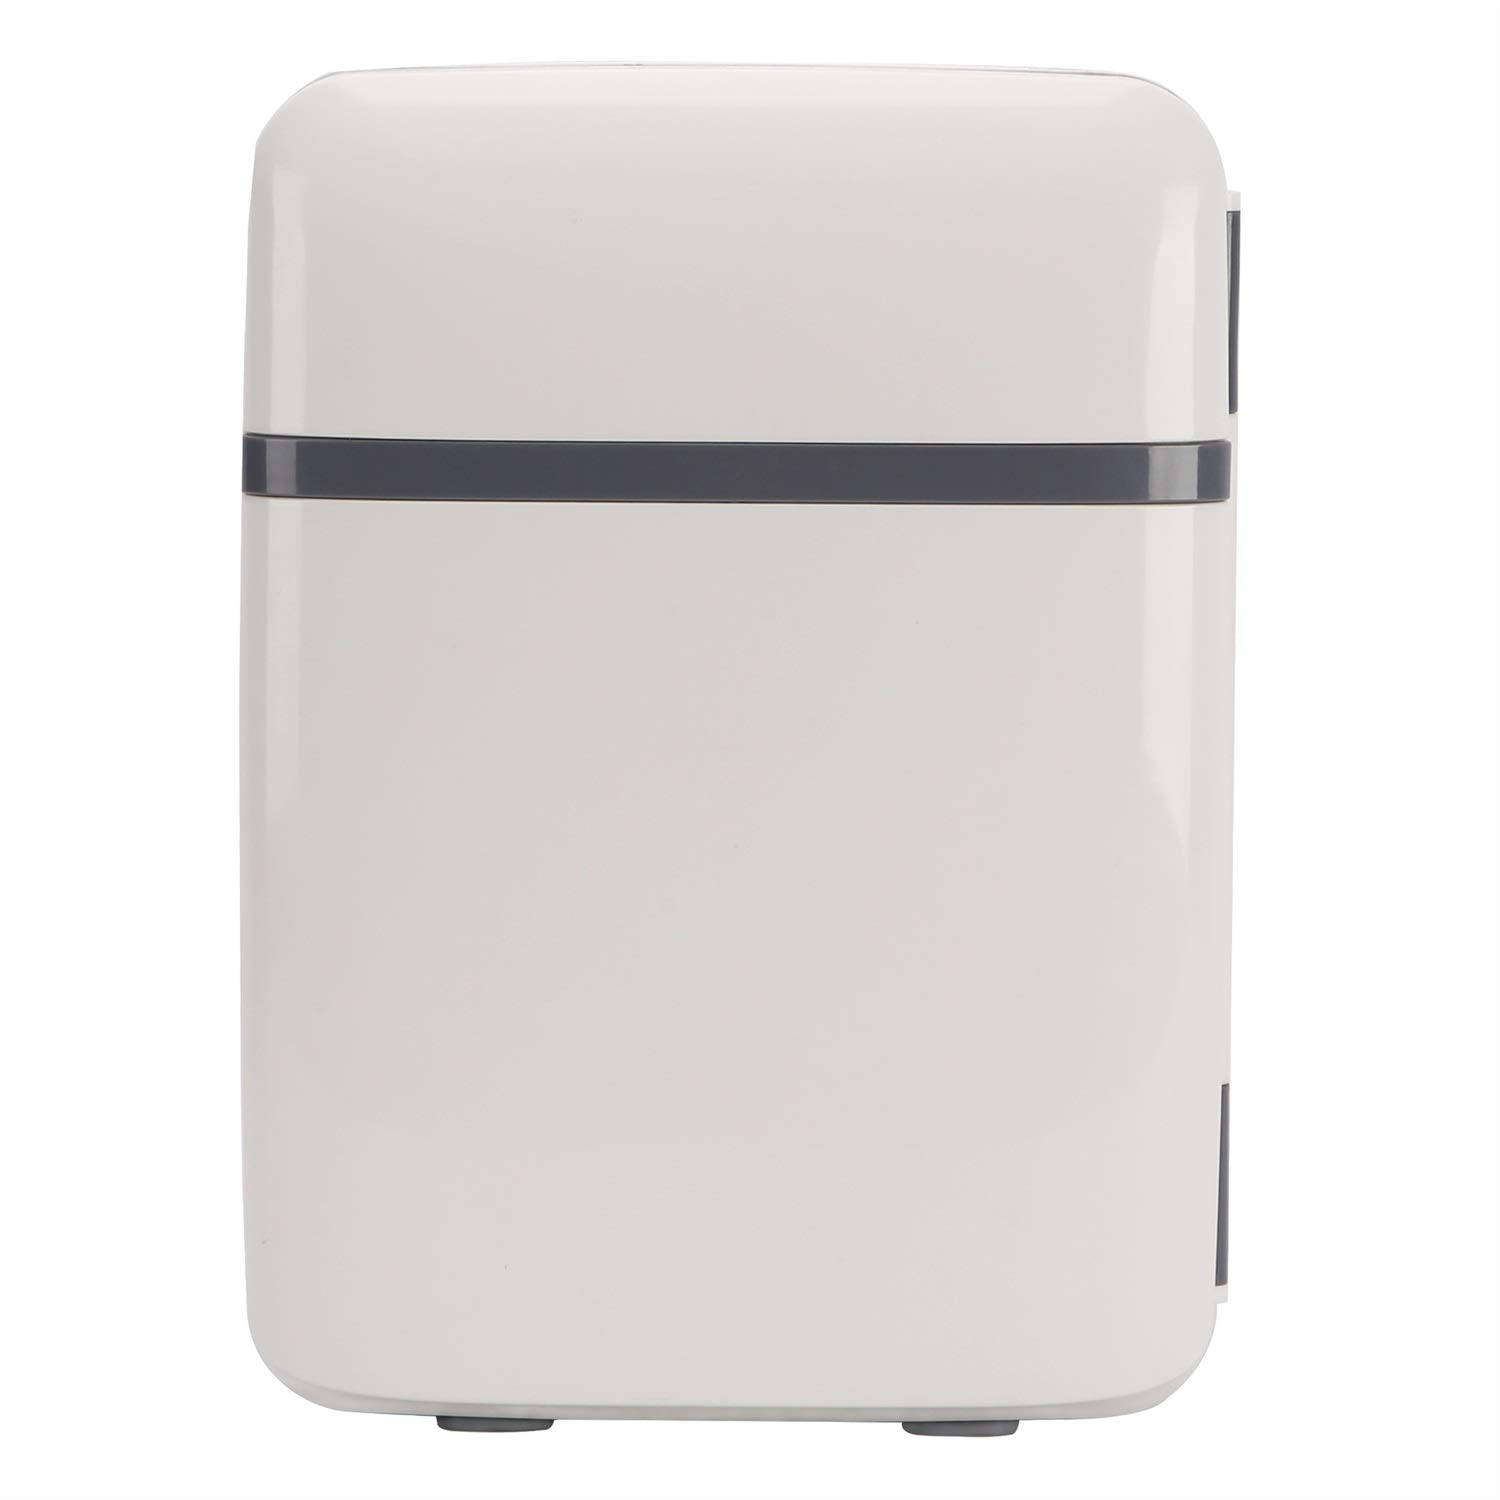 ZXZV 10L car Refrigerator Mini Refrigerator car Gift Refrigerator, Dual-use Frozen Box, Suitable for Outdoor Home Refrigeration (Color : Gray, Size : 285x195mm)